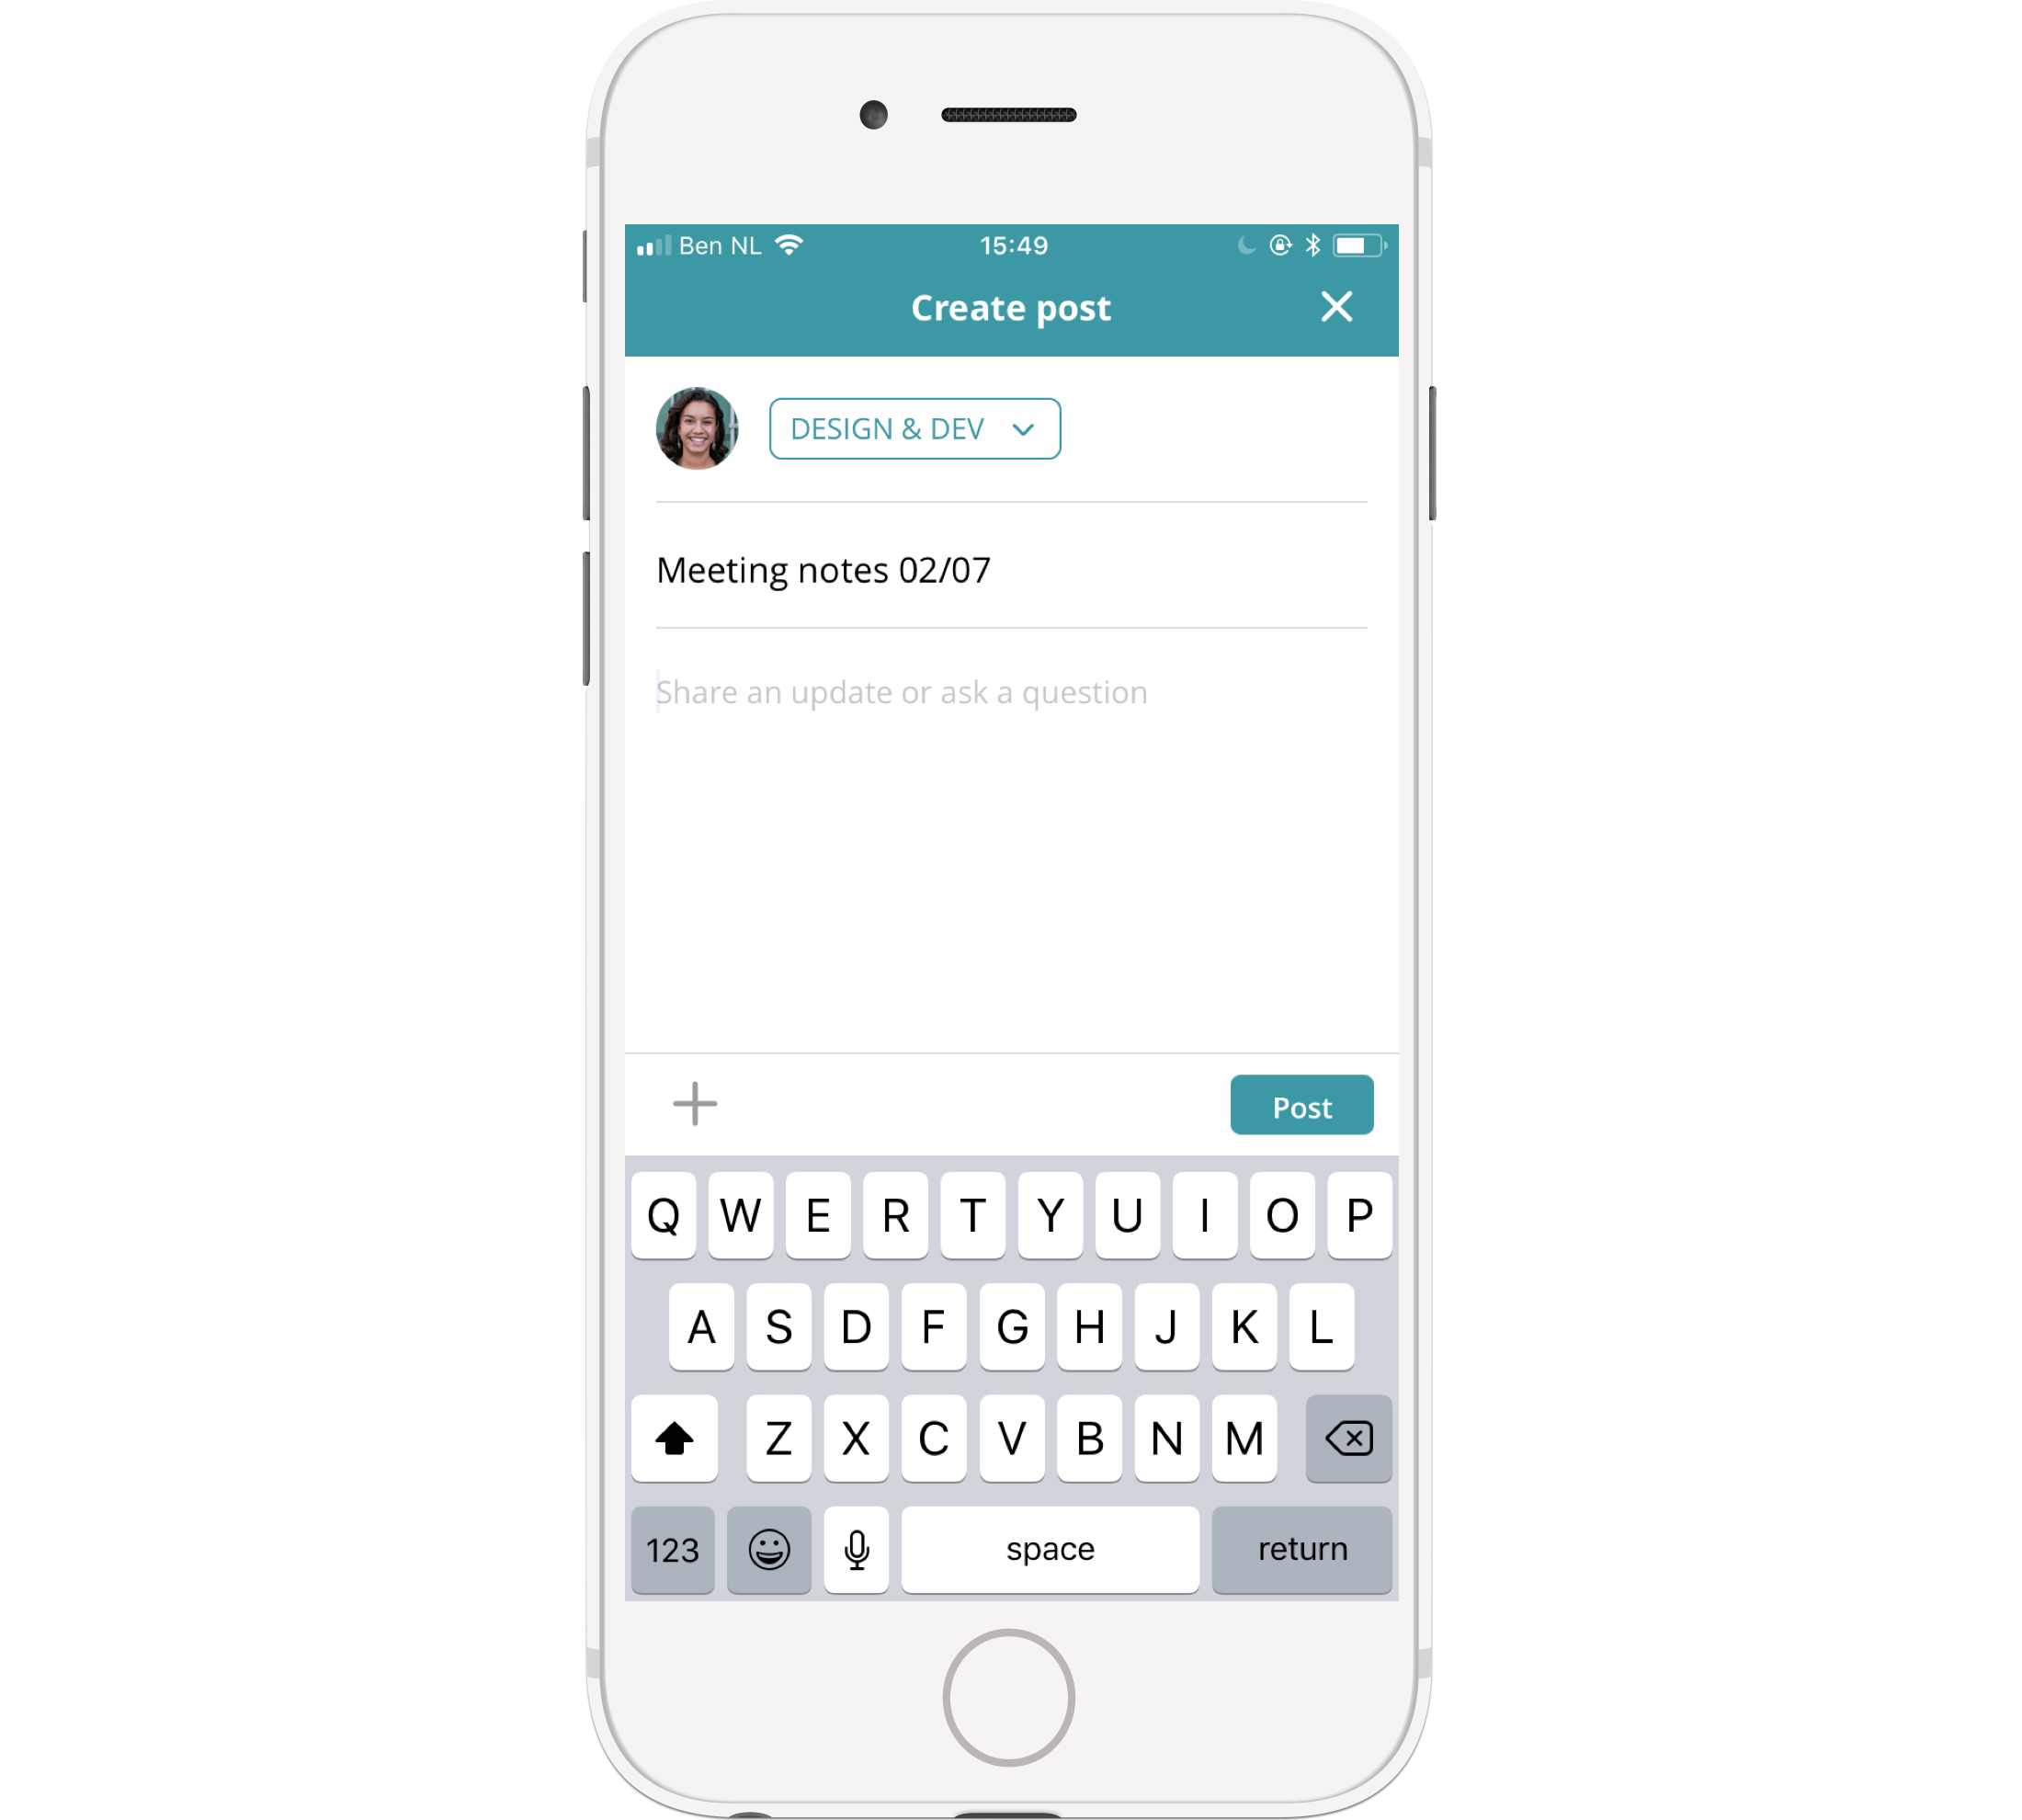 Publish a post straight from the timeline on your phone - it's super easy!